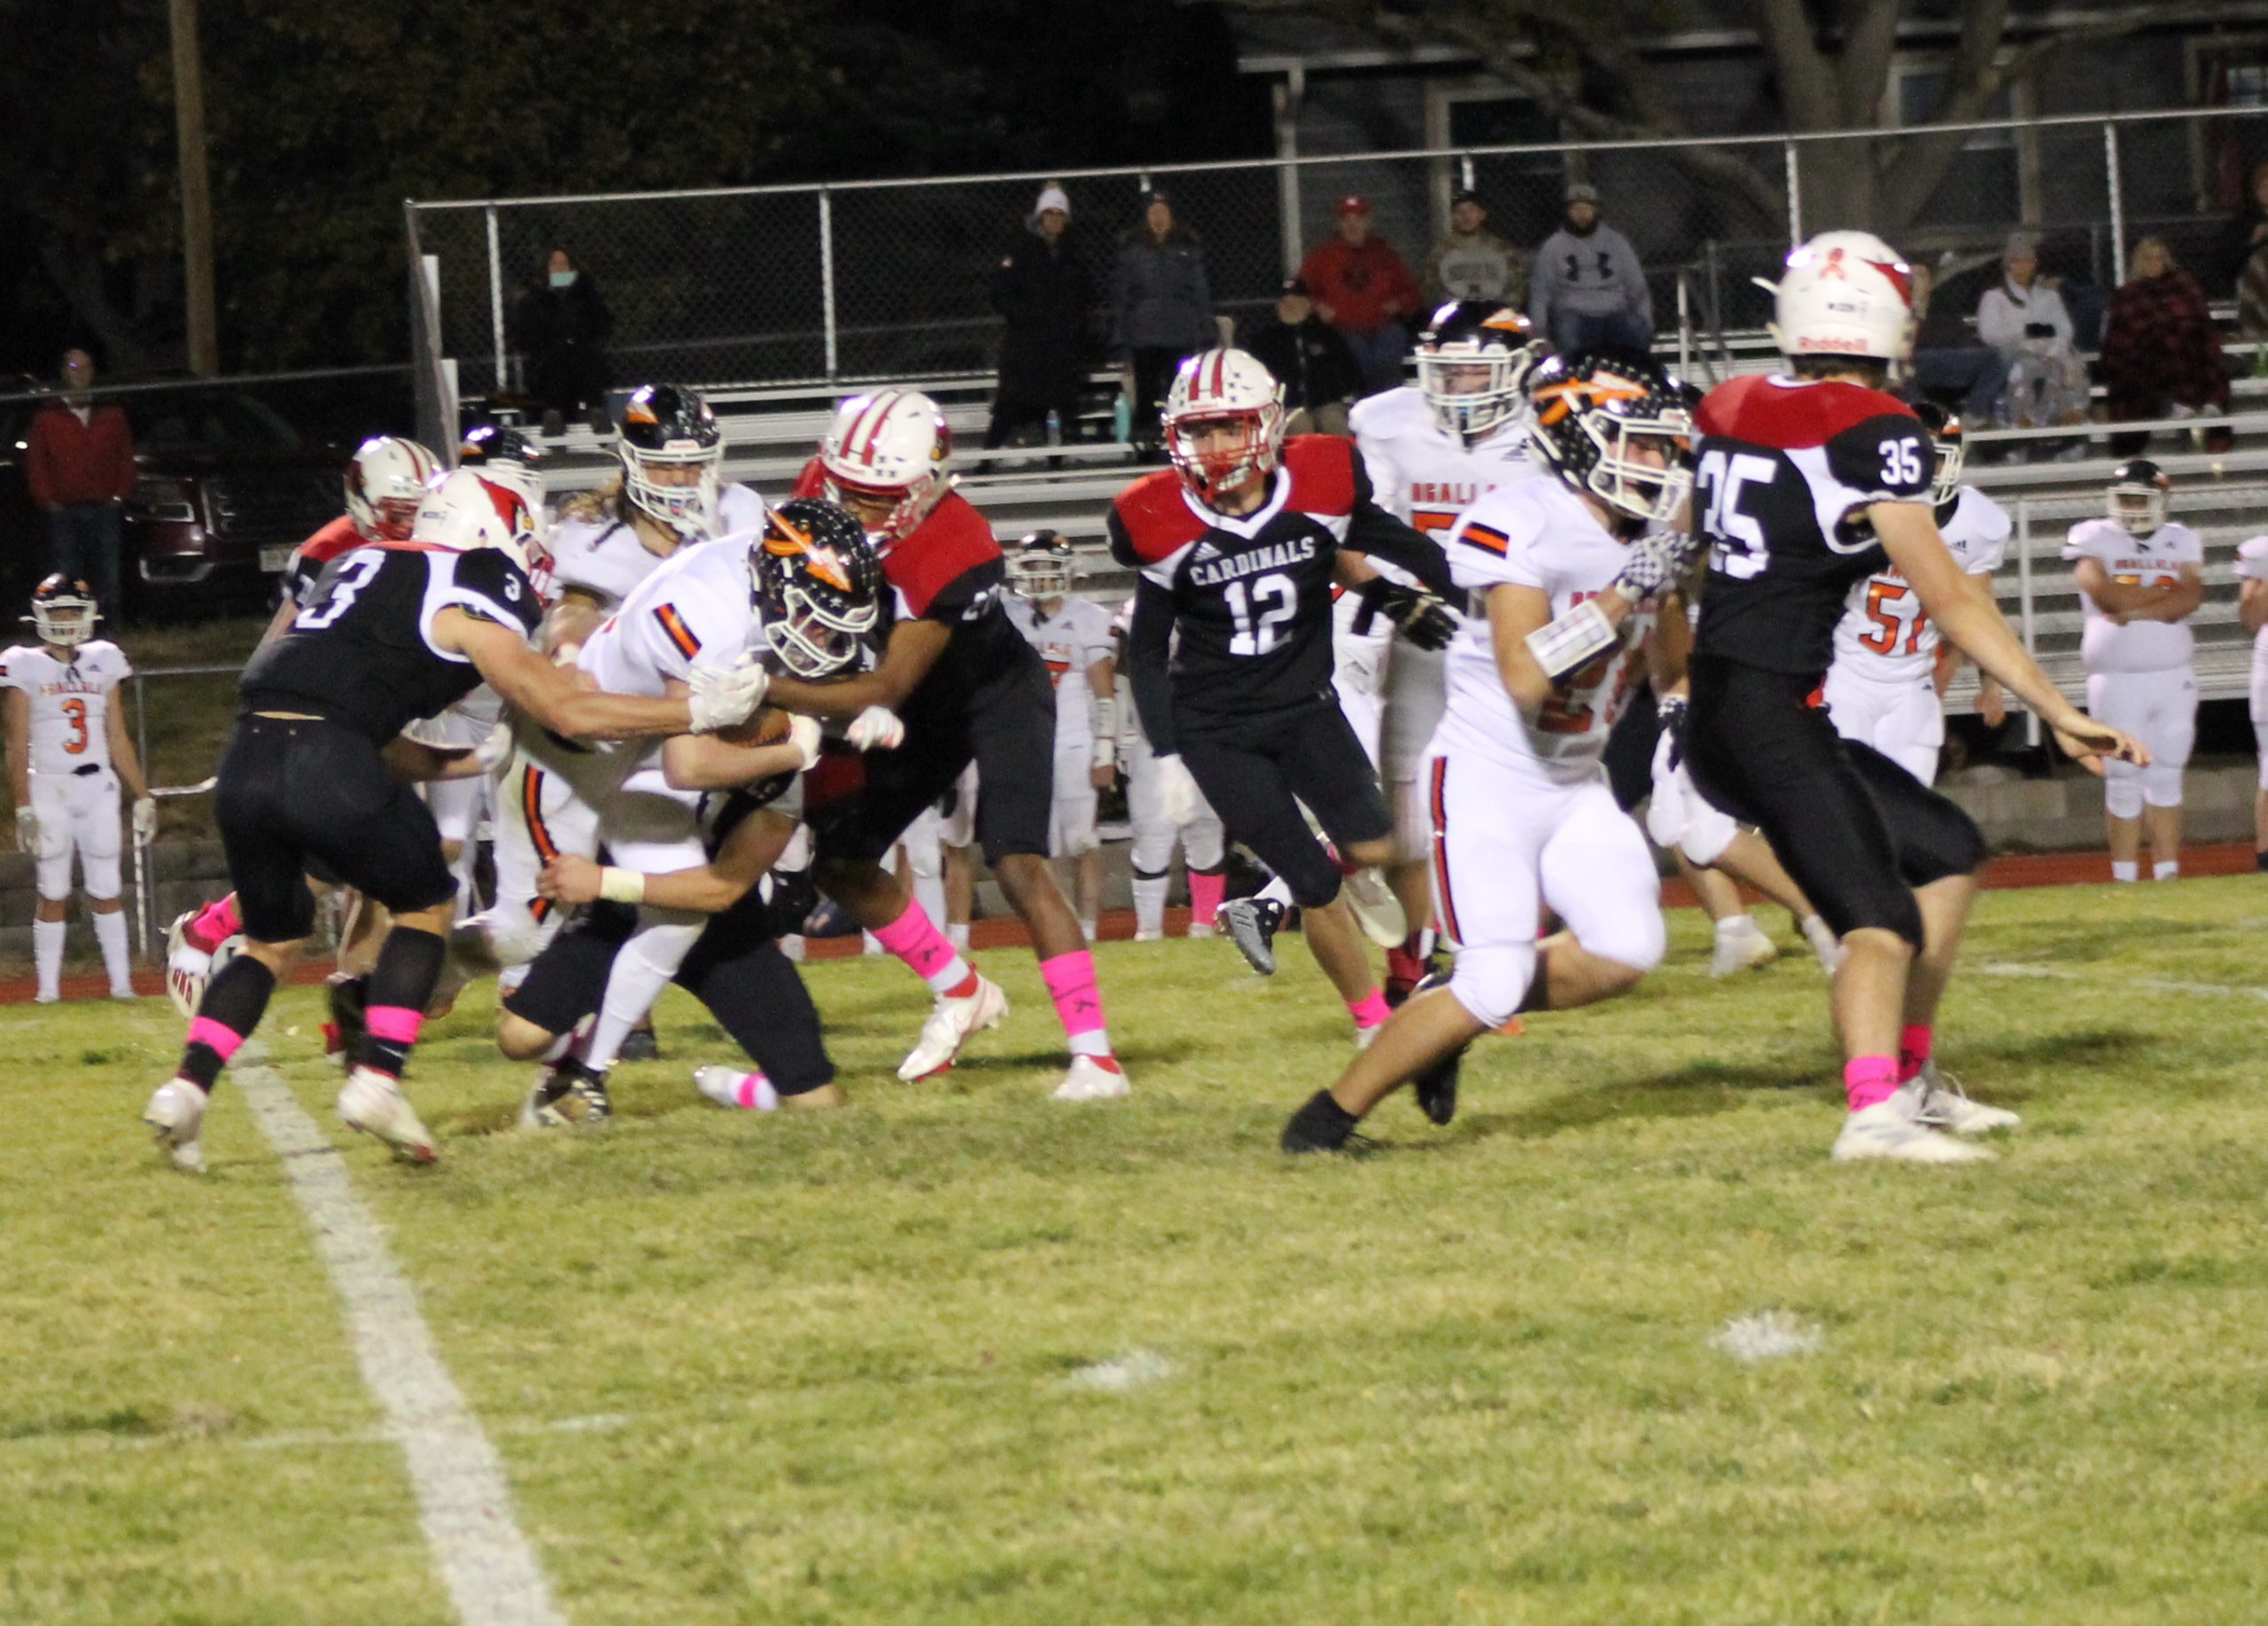 Chadron To Open C-1 Playoffs With Battle Creek